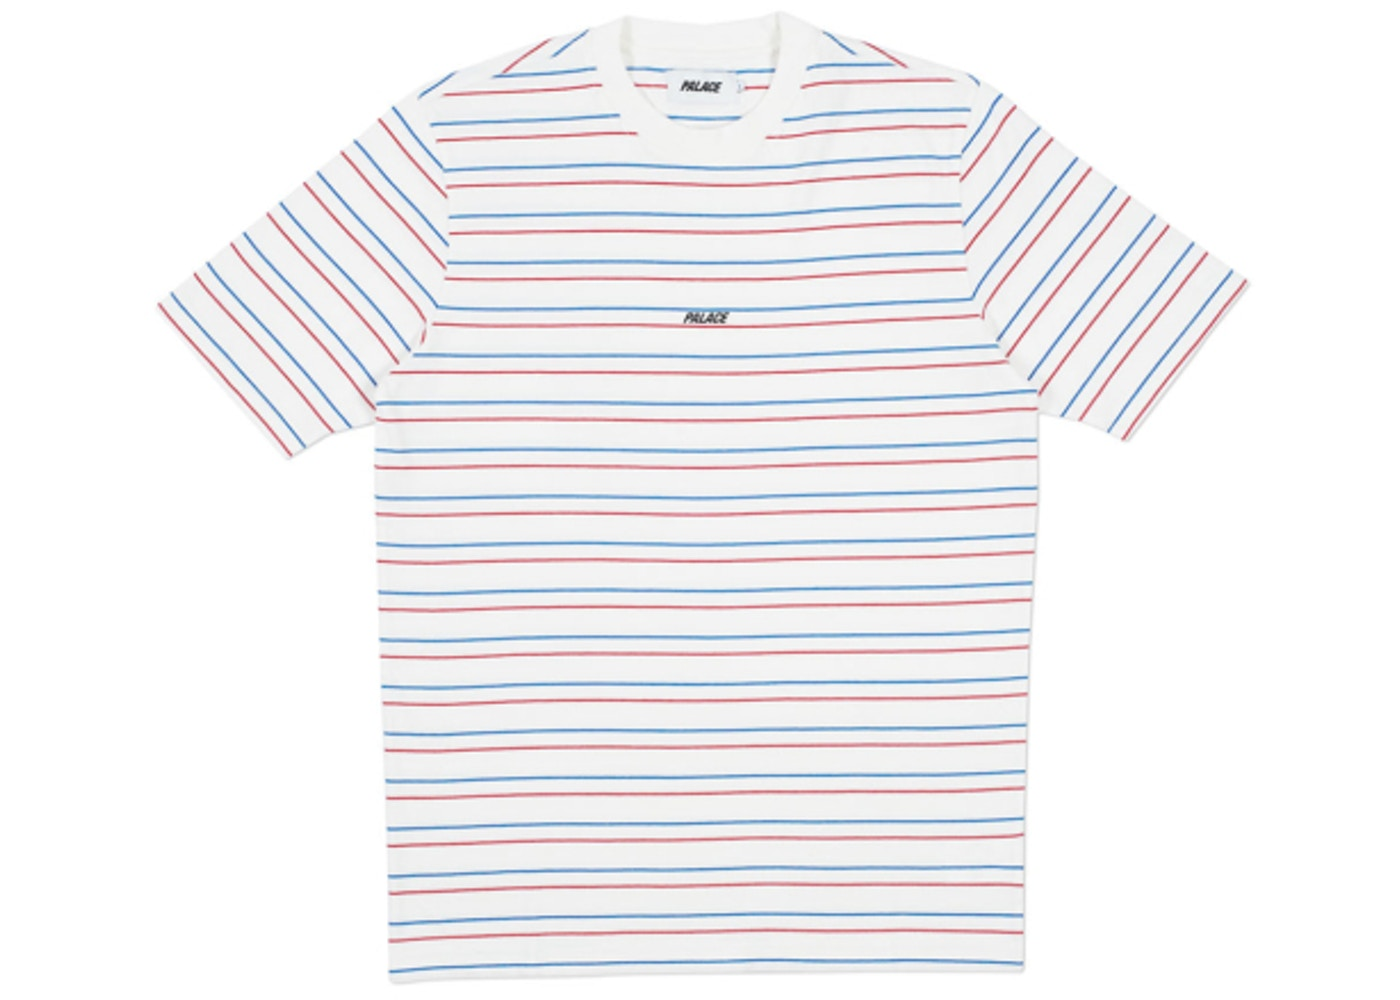 2d60da666a Palace Basically a Stripe T-Shirt White/Blue/Red - Spring 2018